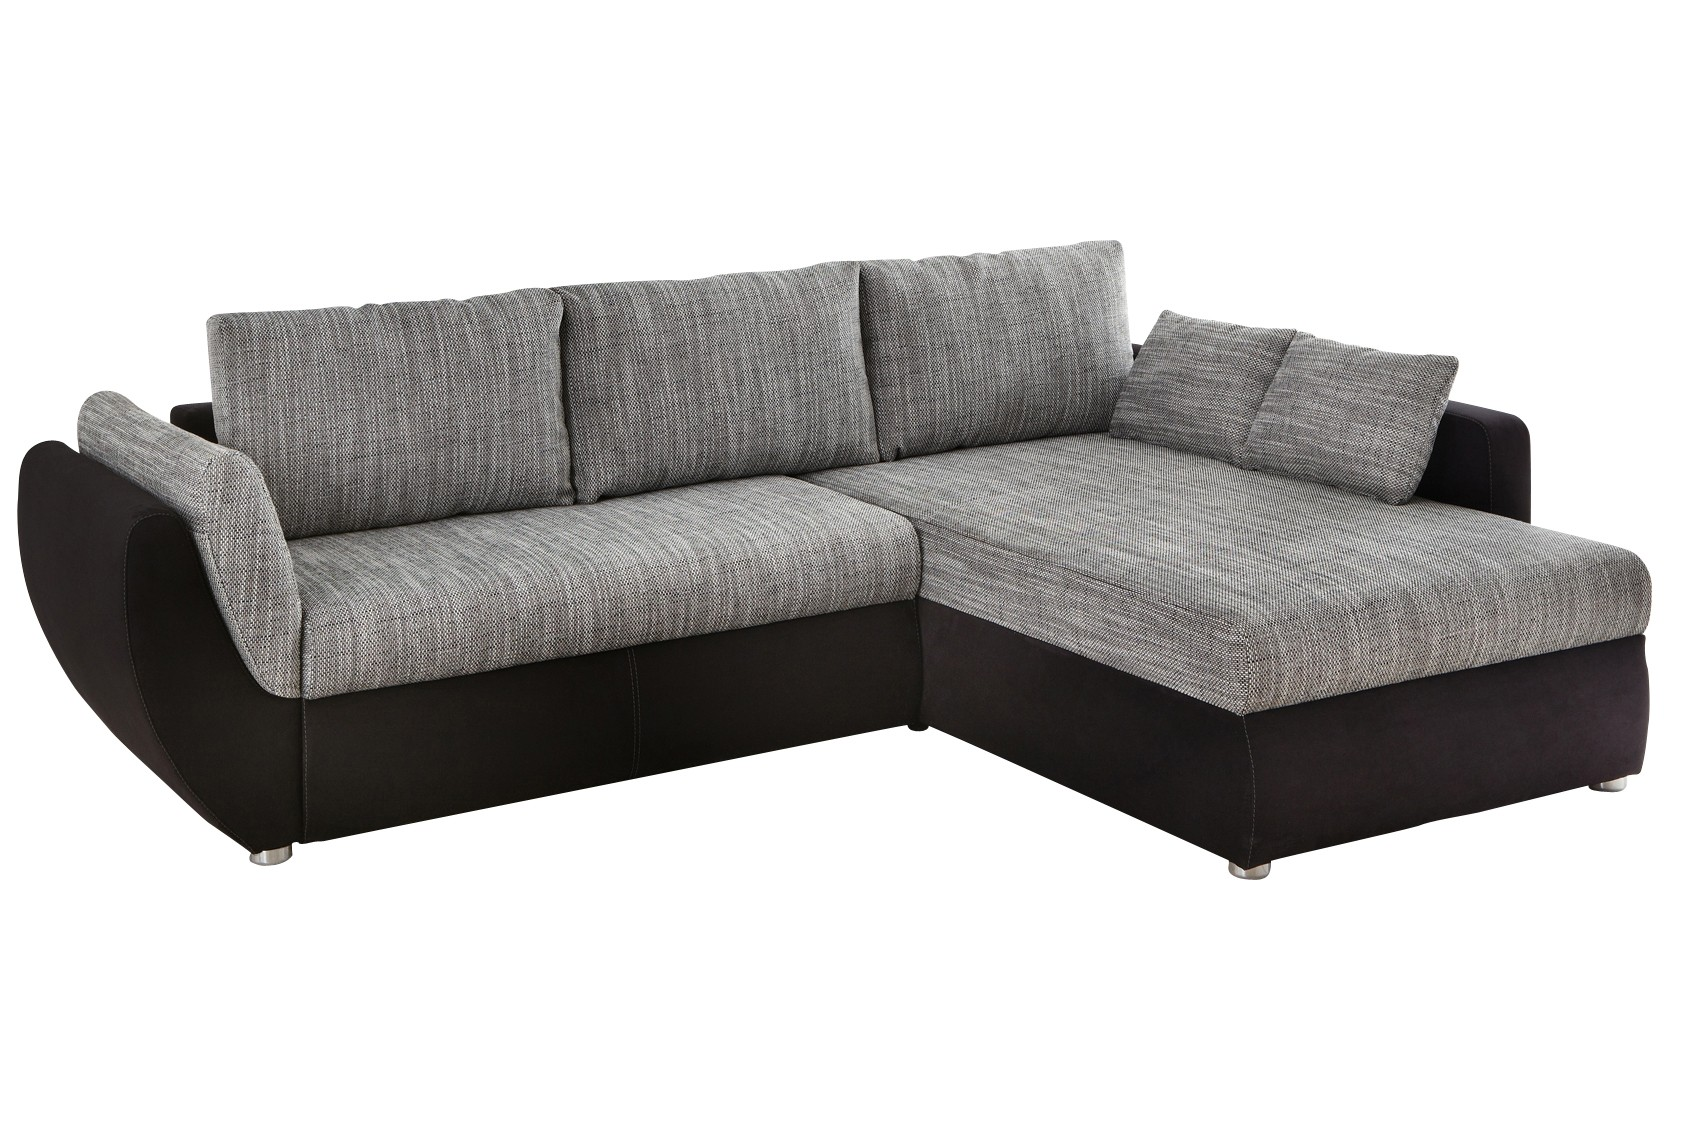 Günstige Couch Mit Schlaffunktion Ecksofa - Samples In World